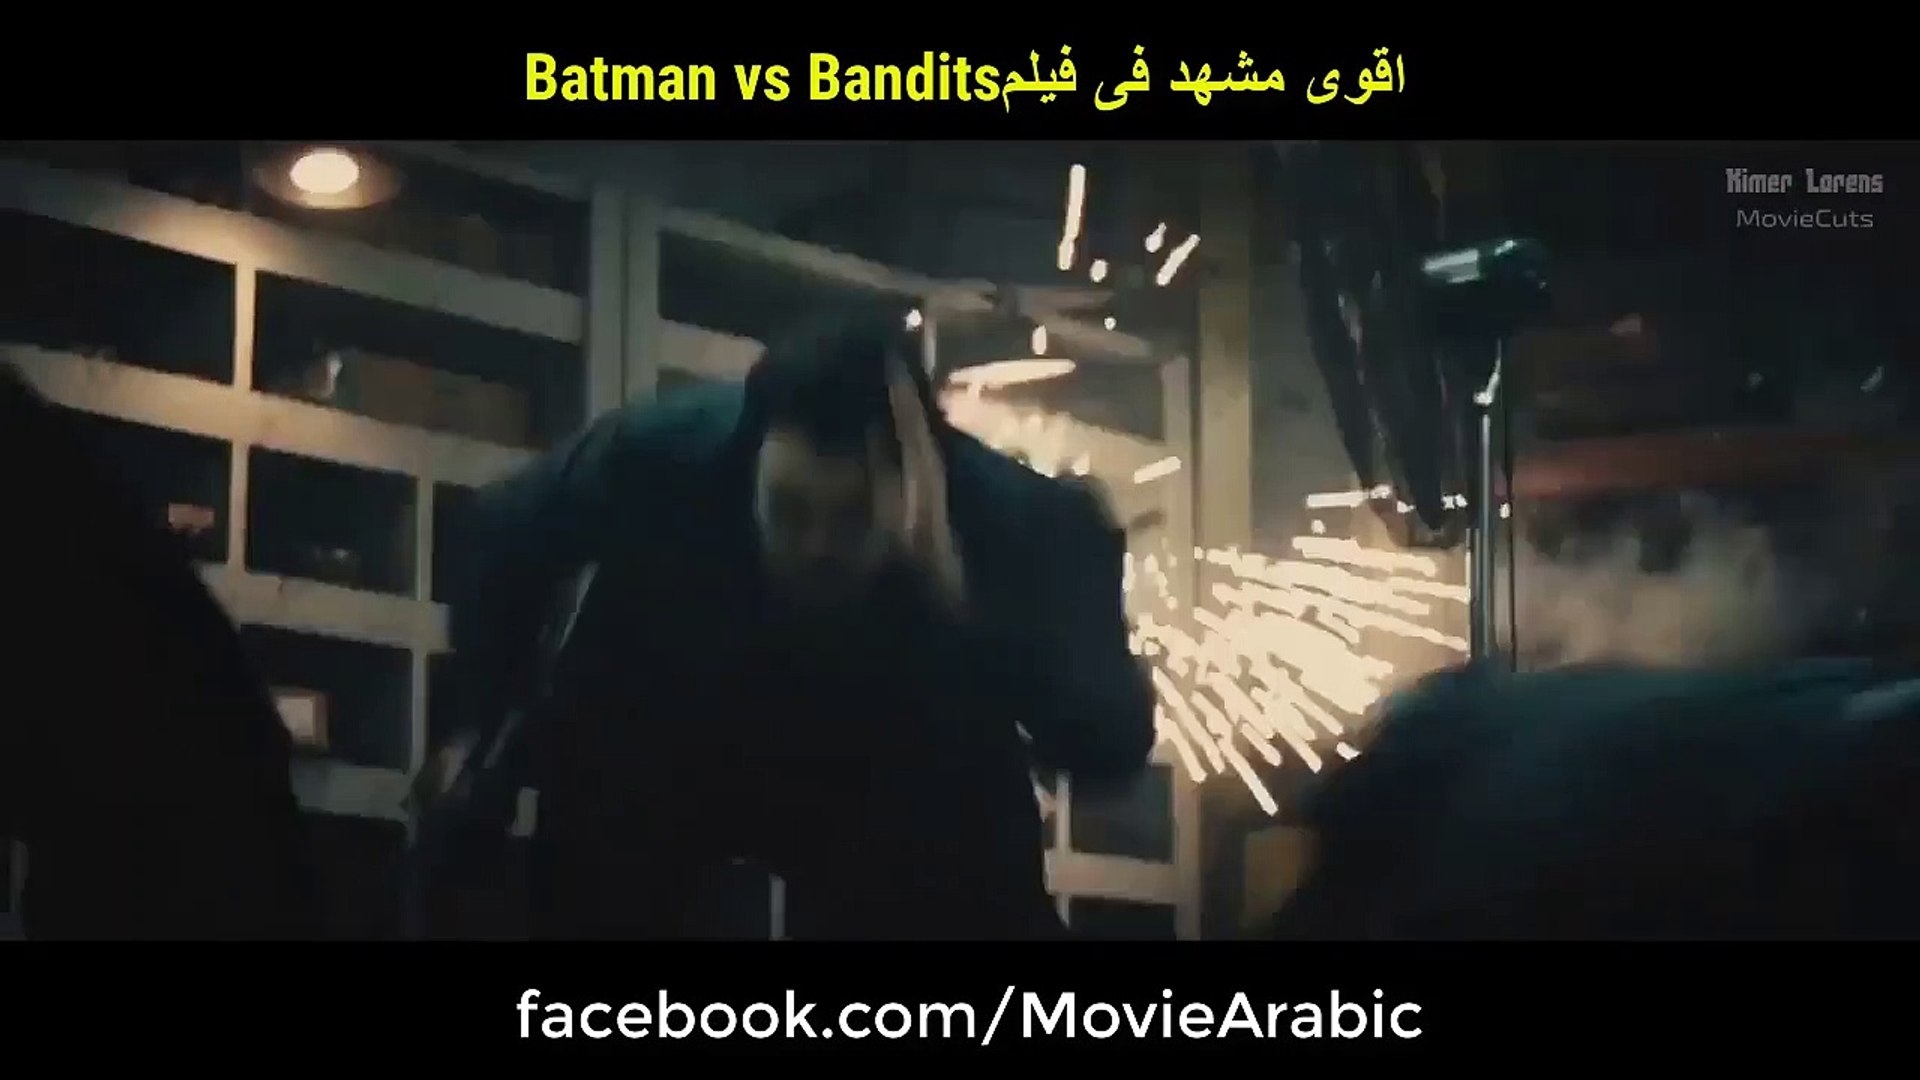 Batman vs Bandits ⚡ أقوى مشهد أكشن فيBatman vs Superman (2016)